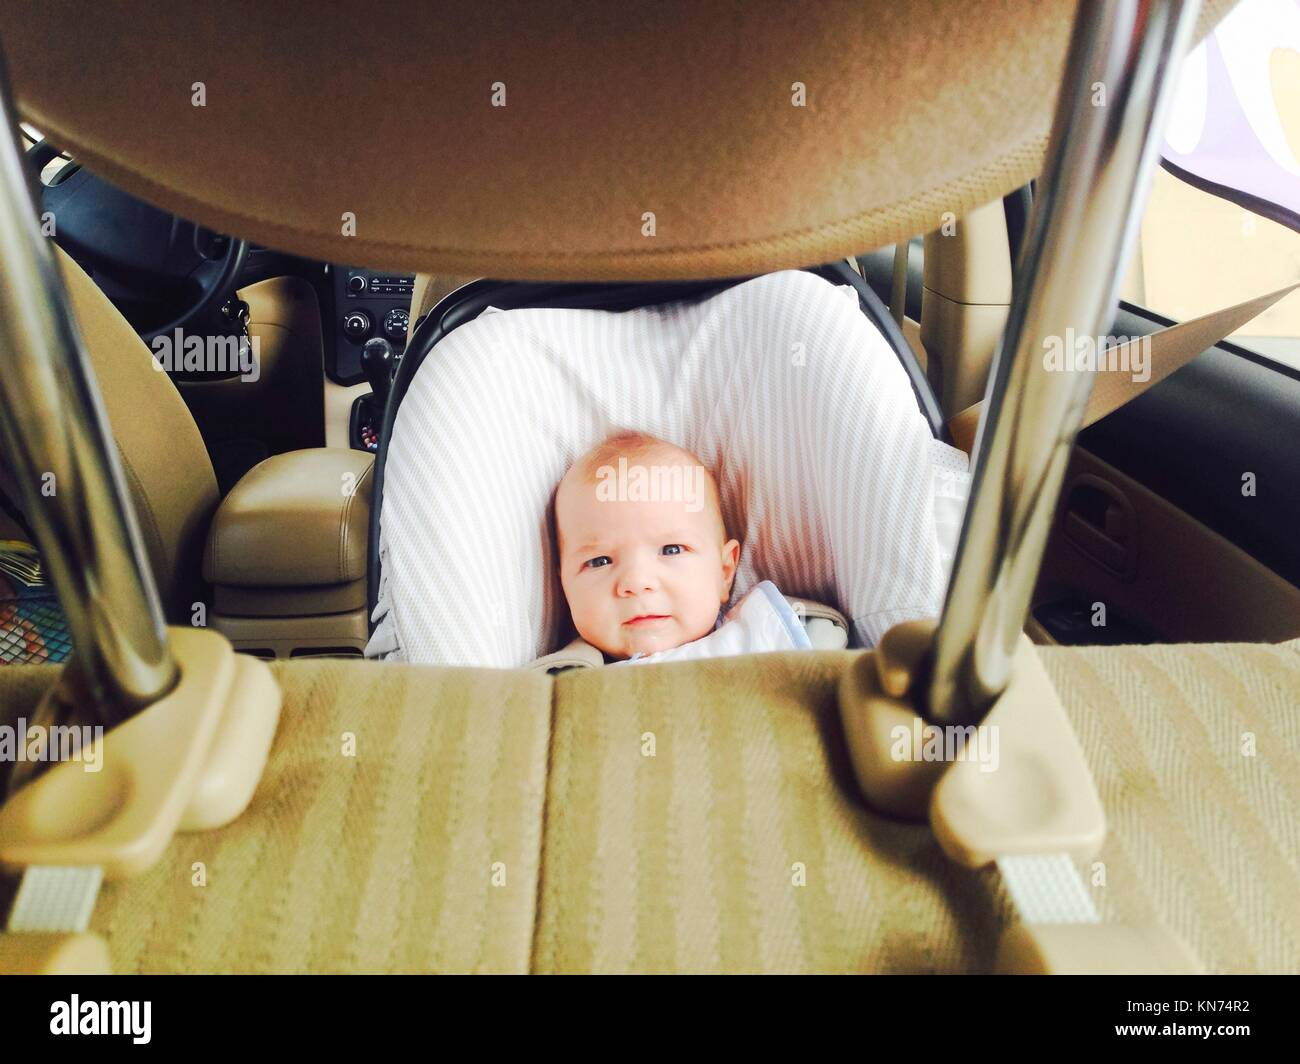 4 months old baby boy in a safety car seat. Picture taken from headrest. - Stock Image